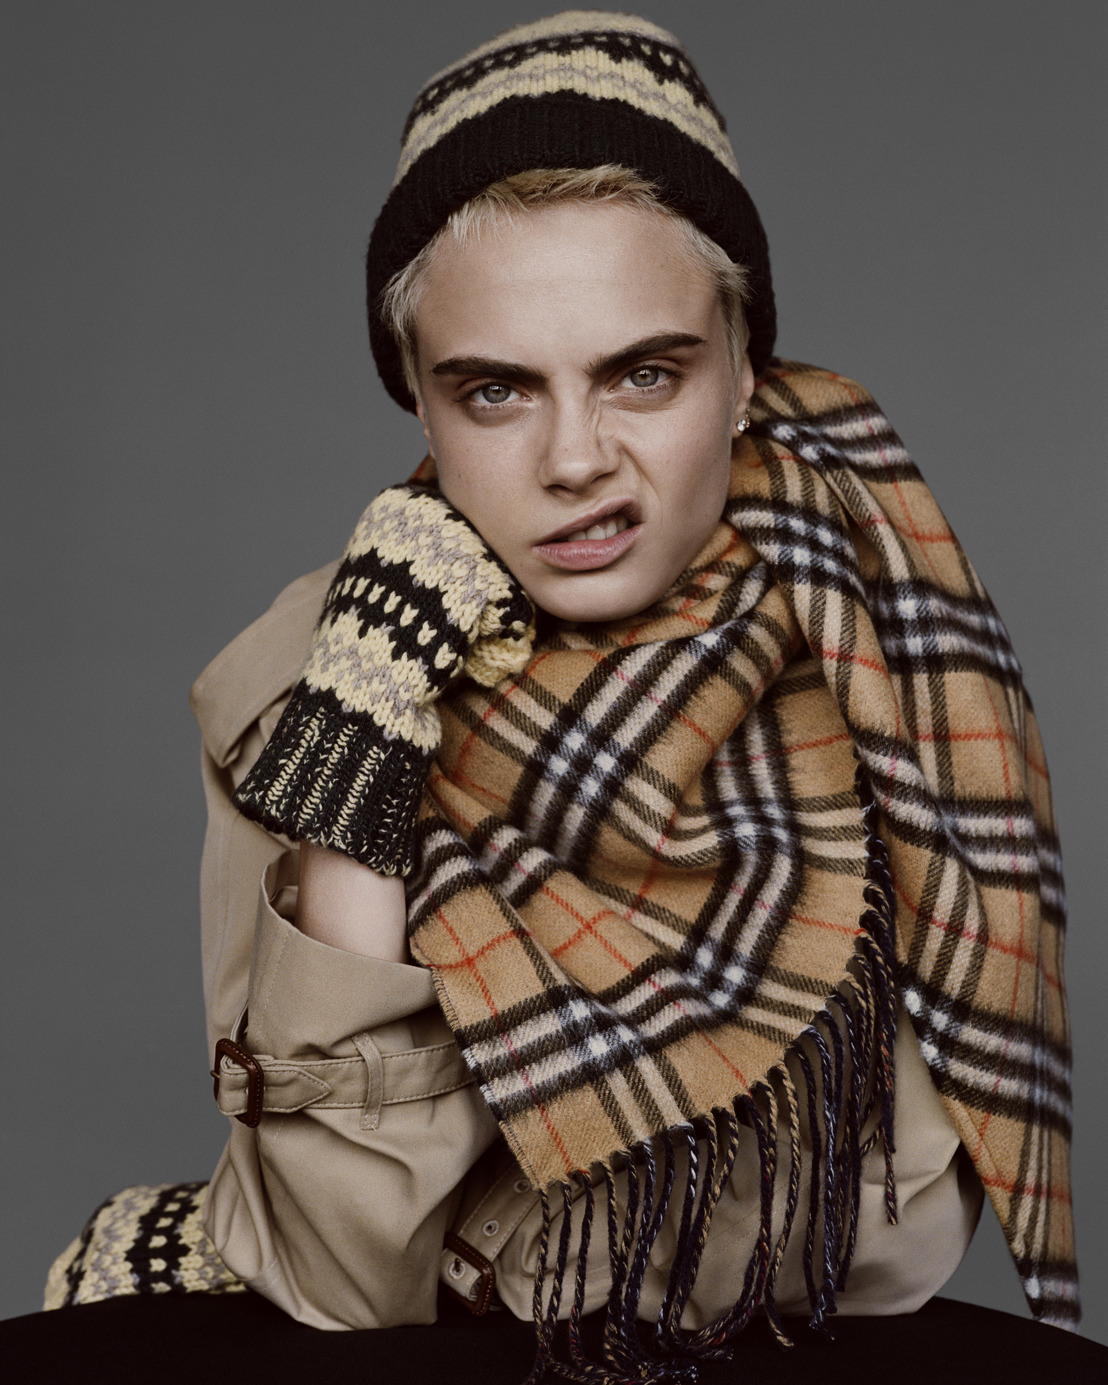 CARA DELEVINGNE Y MATT SMITH PROTAGONIZAN LA CAMPAÑA FALL WINTER 2017 DE BURBERRY